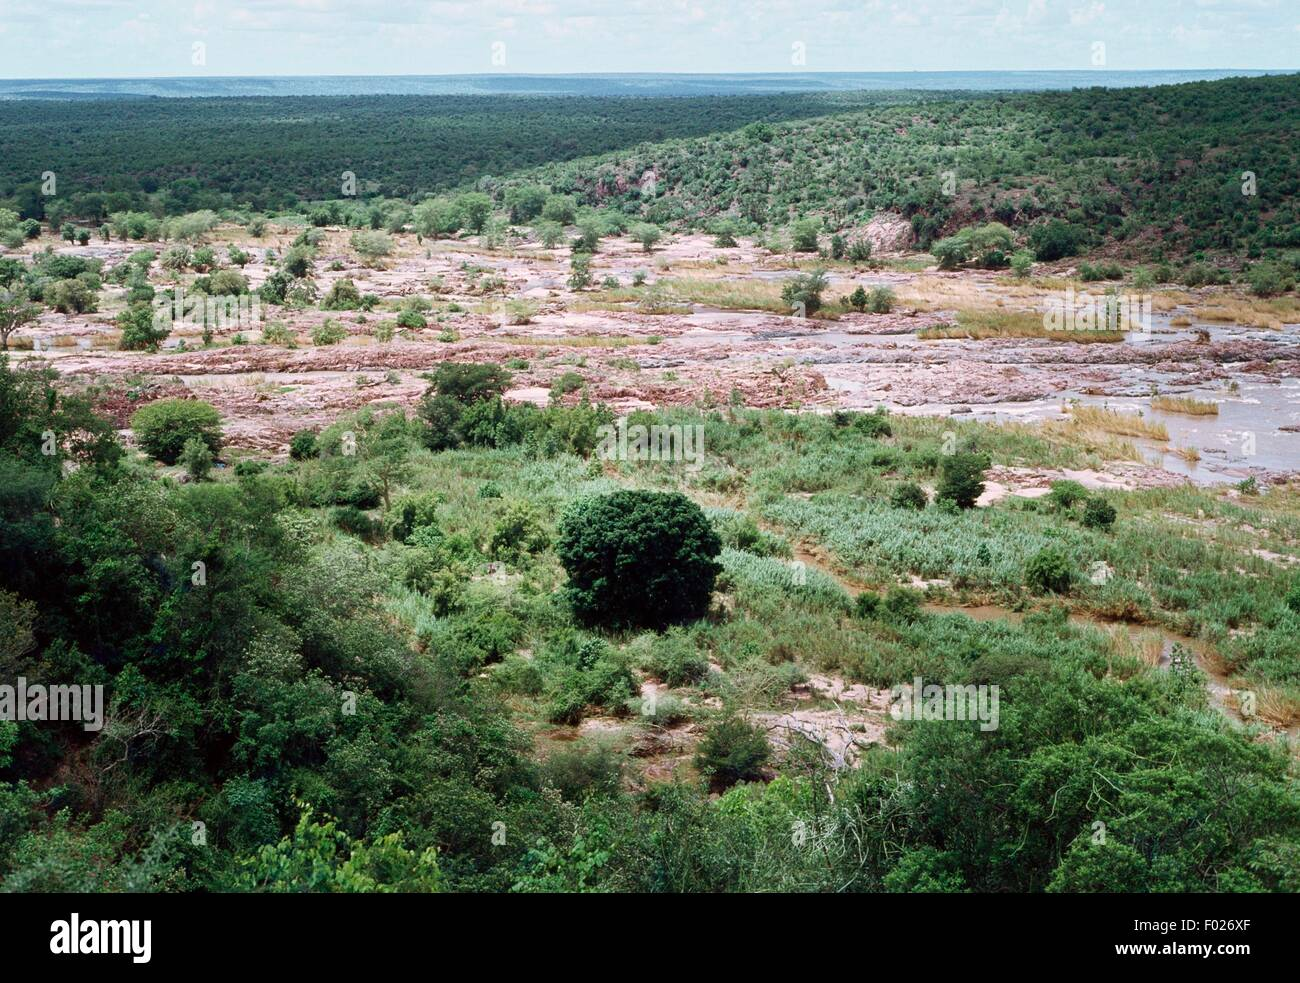 Olipants River, Kruger National Park, South Africa. - Stock Image